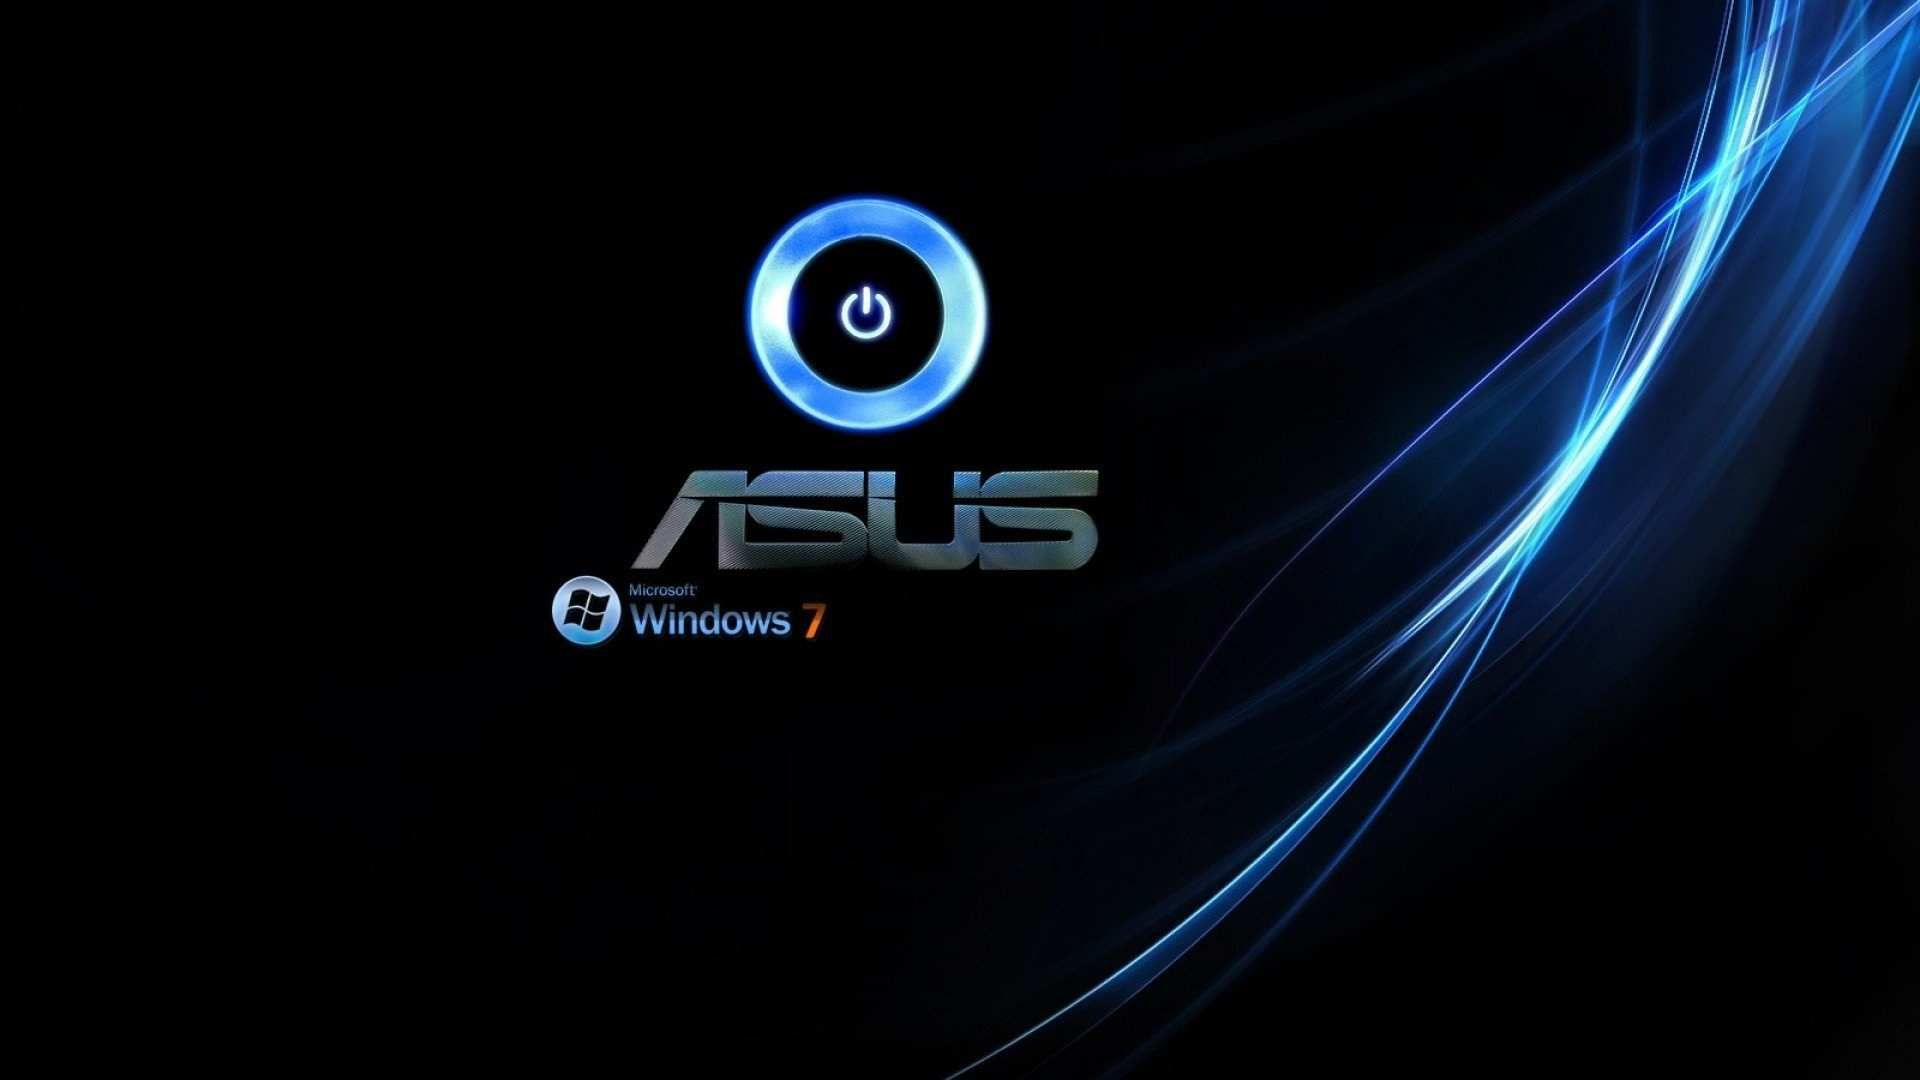 Gambar Wallpaper Laptop Asus Asus Hd Wallpapers Dengan